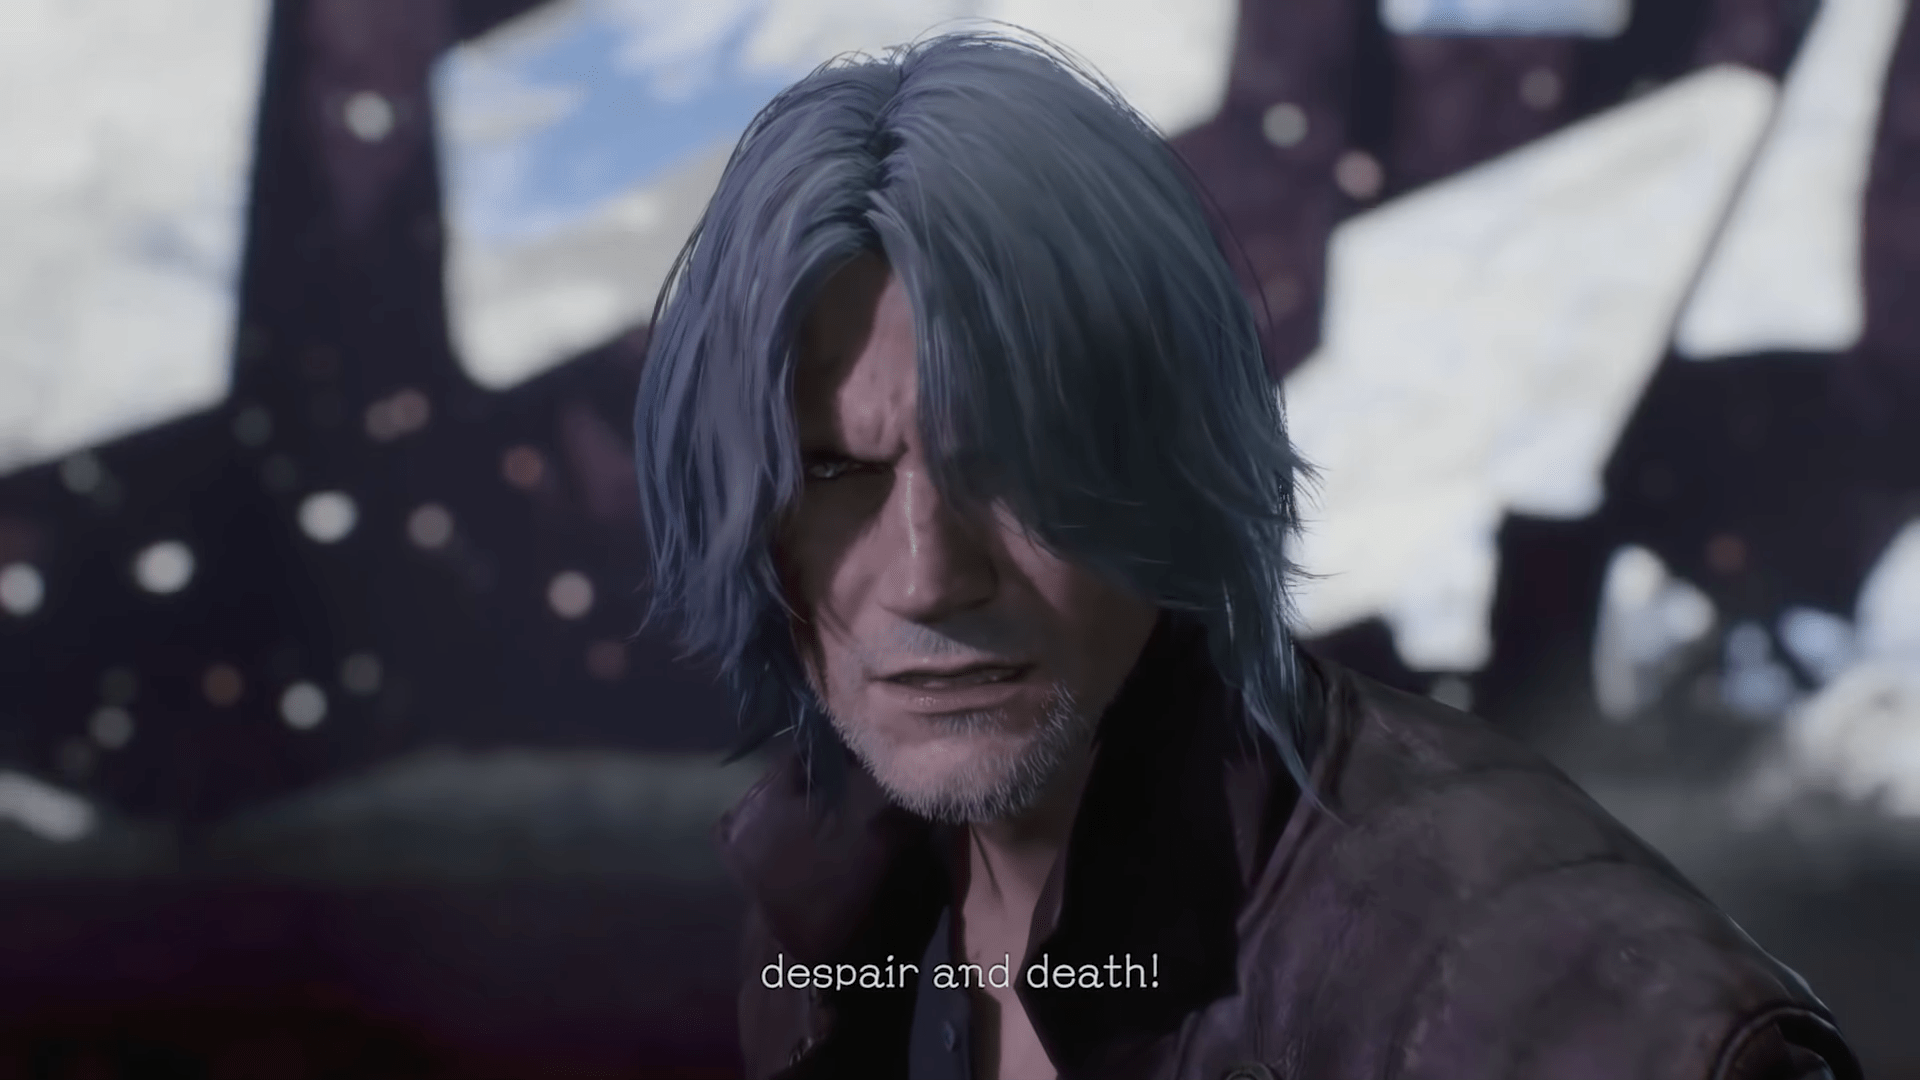 Devil May Cry 5 On Steam Had Denuvo Removed From The Title, Monster Hunter Likely Next